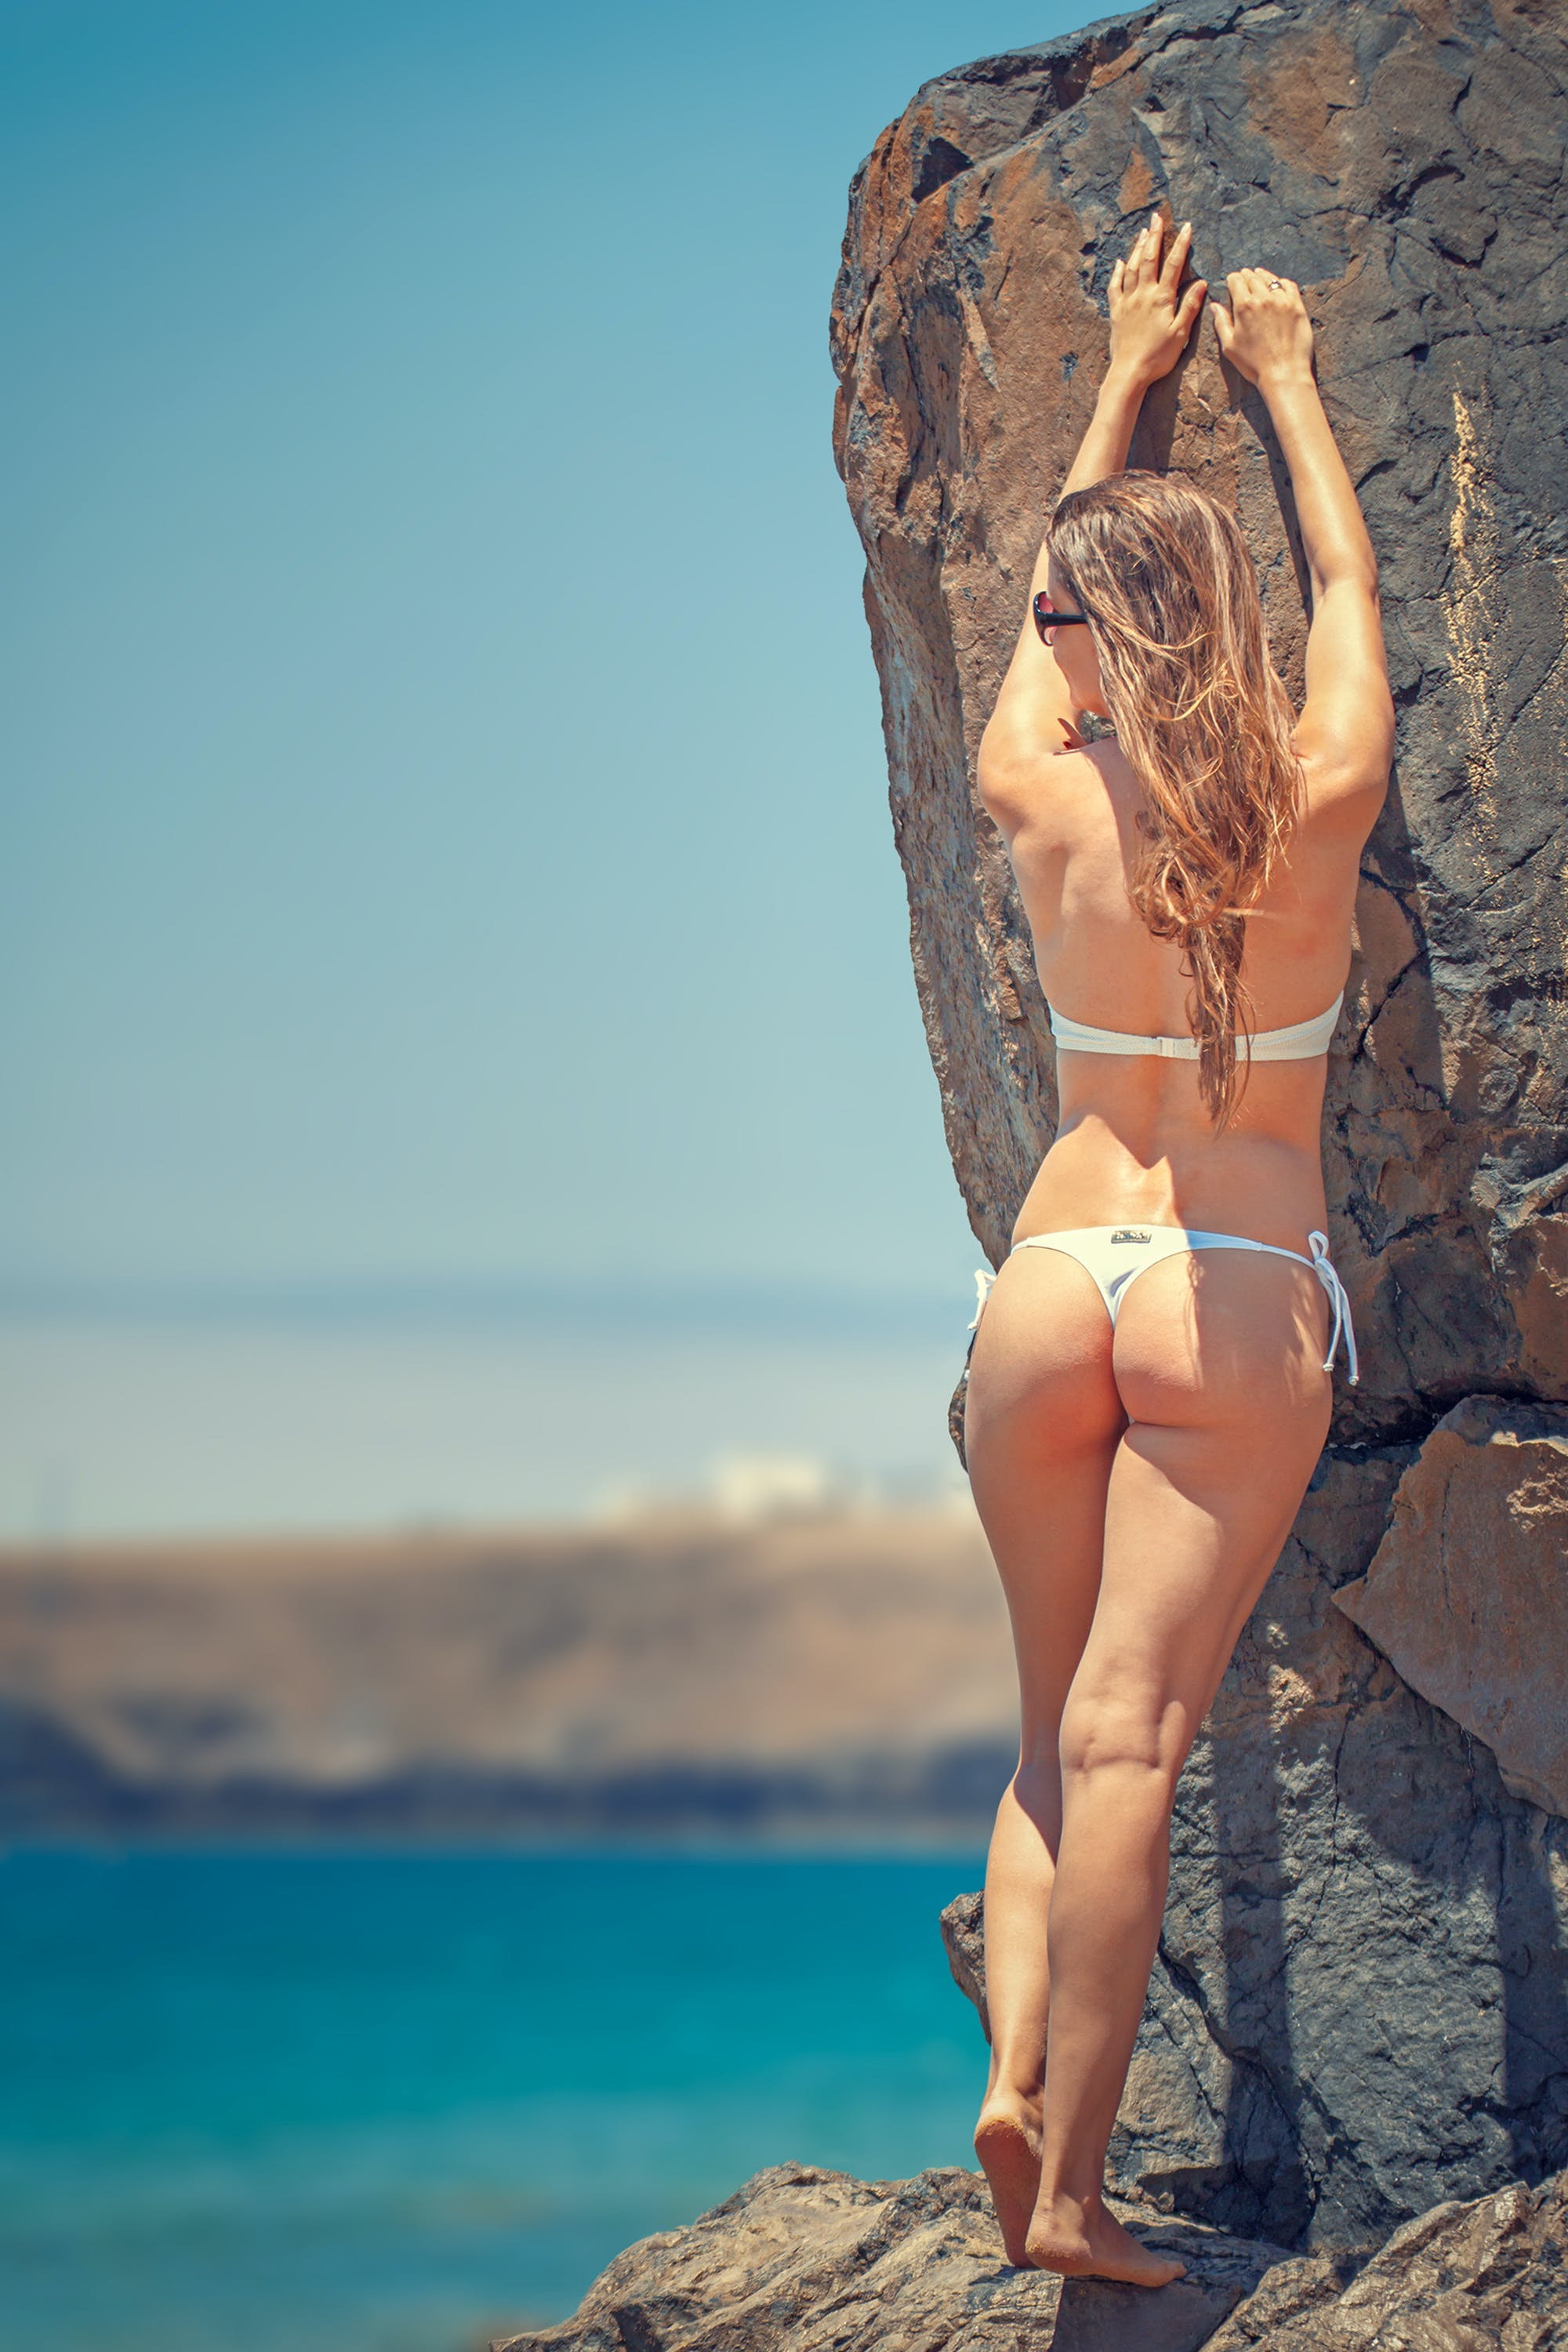 Woman Wearing White Bikini Leaning on Gray Rock